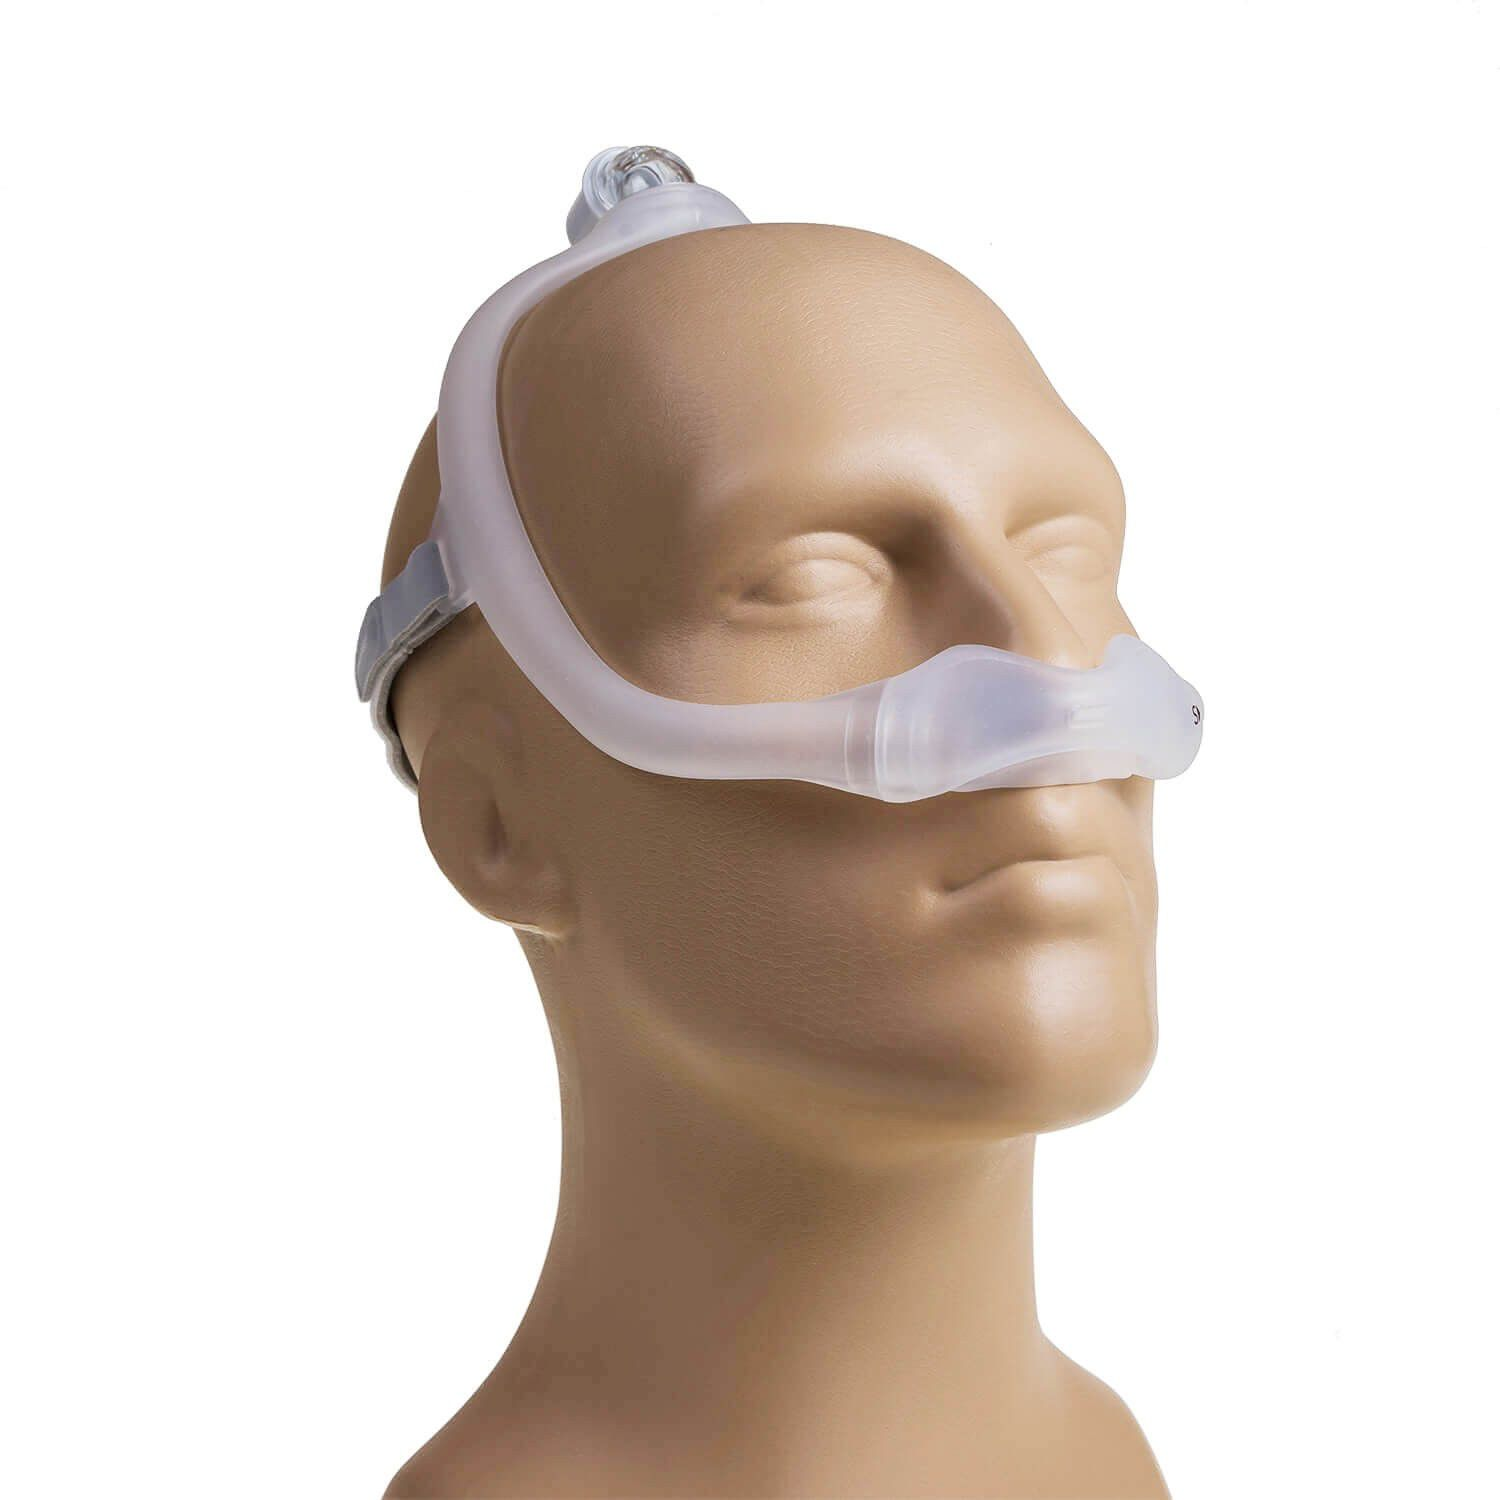 Kit CPAP Automático DreamStation + Máscara Nasal DreamWear Philips Respironics